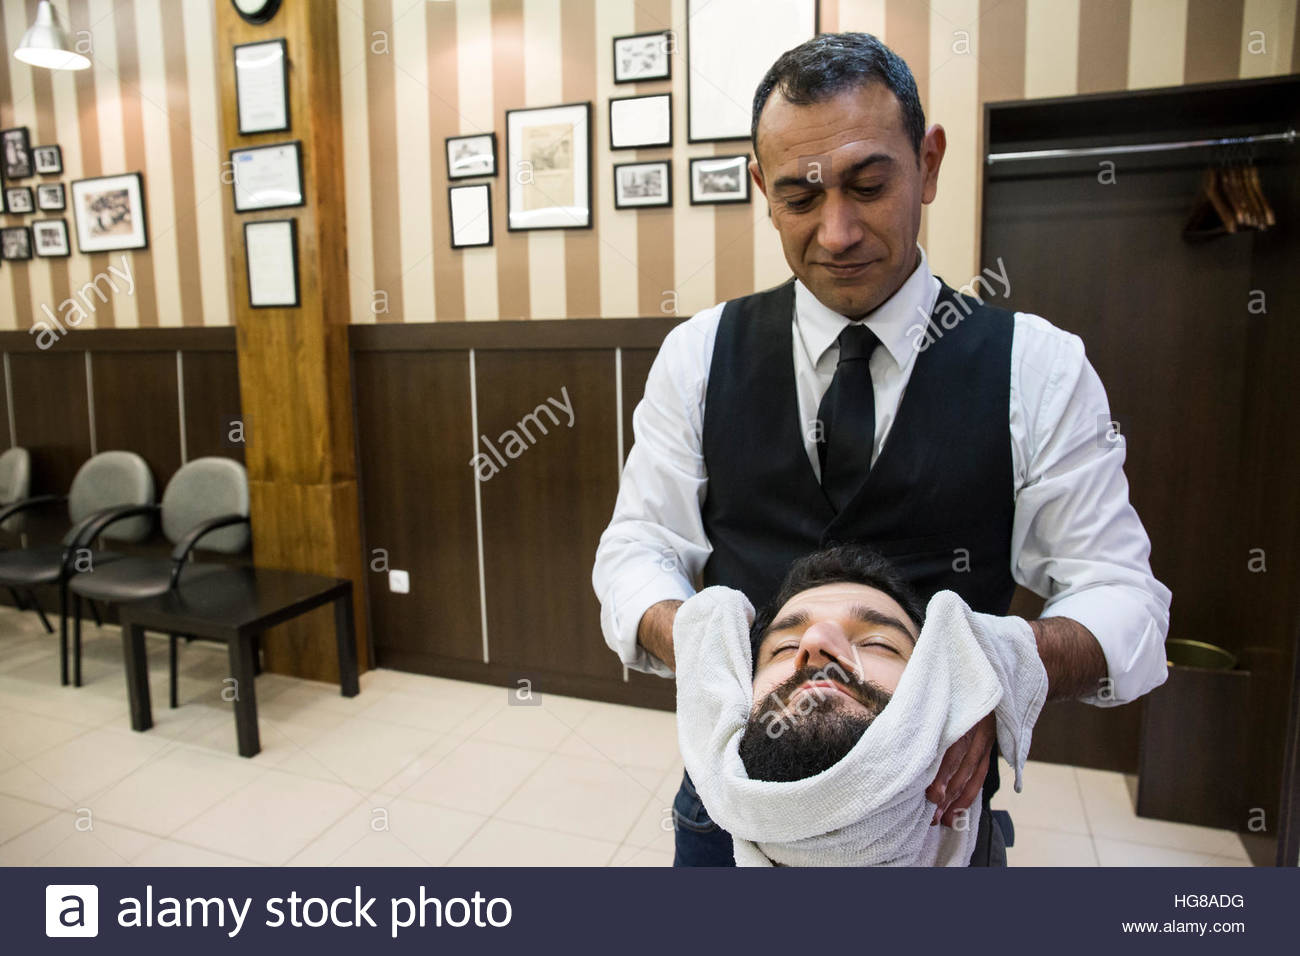 Barber drying man's face in shop - Stock Image